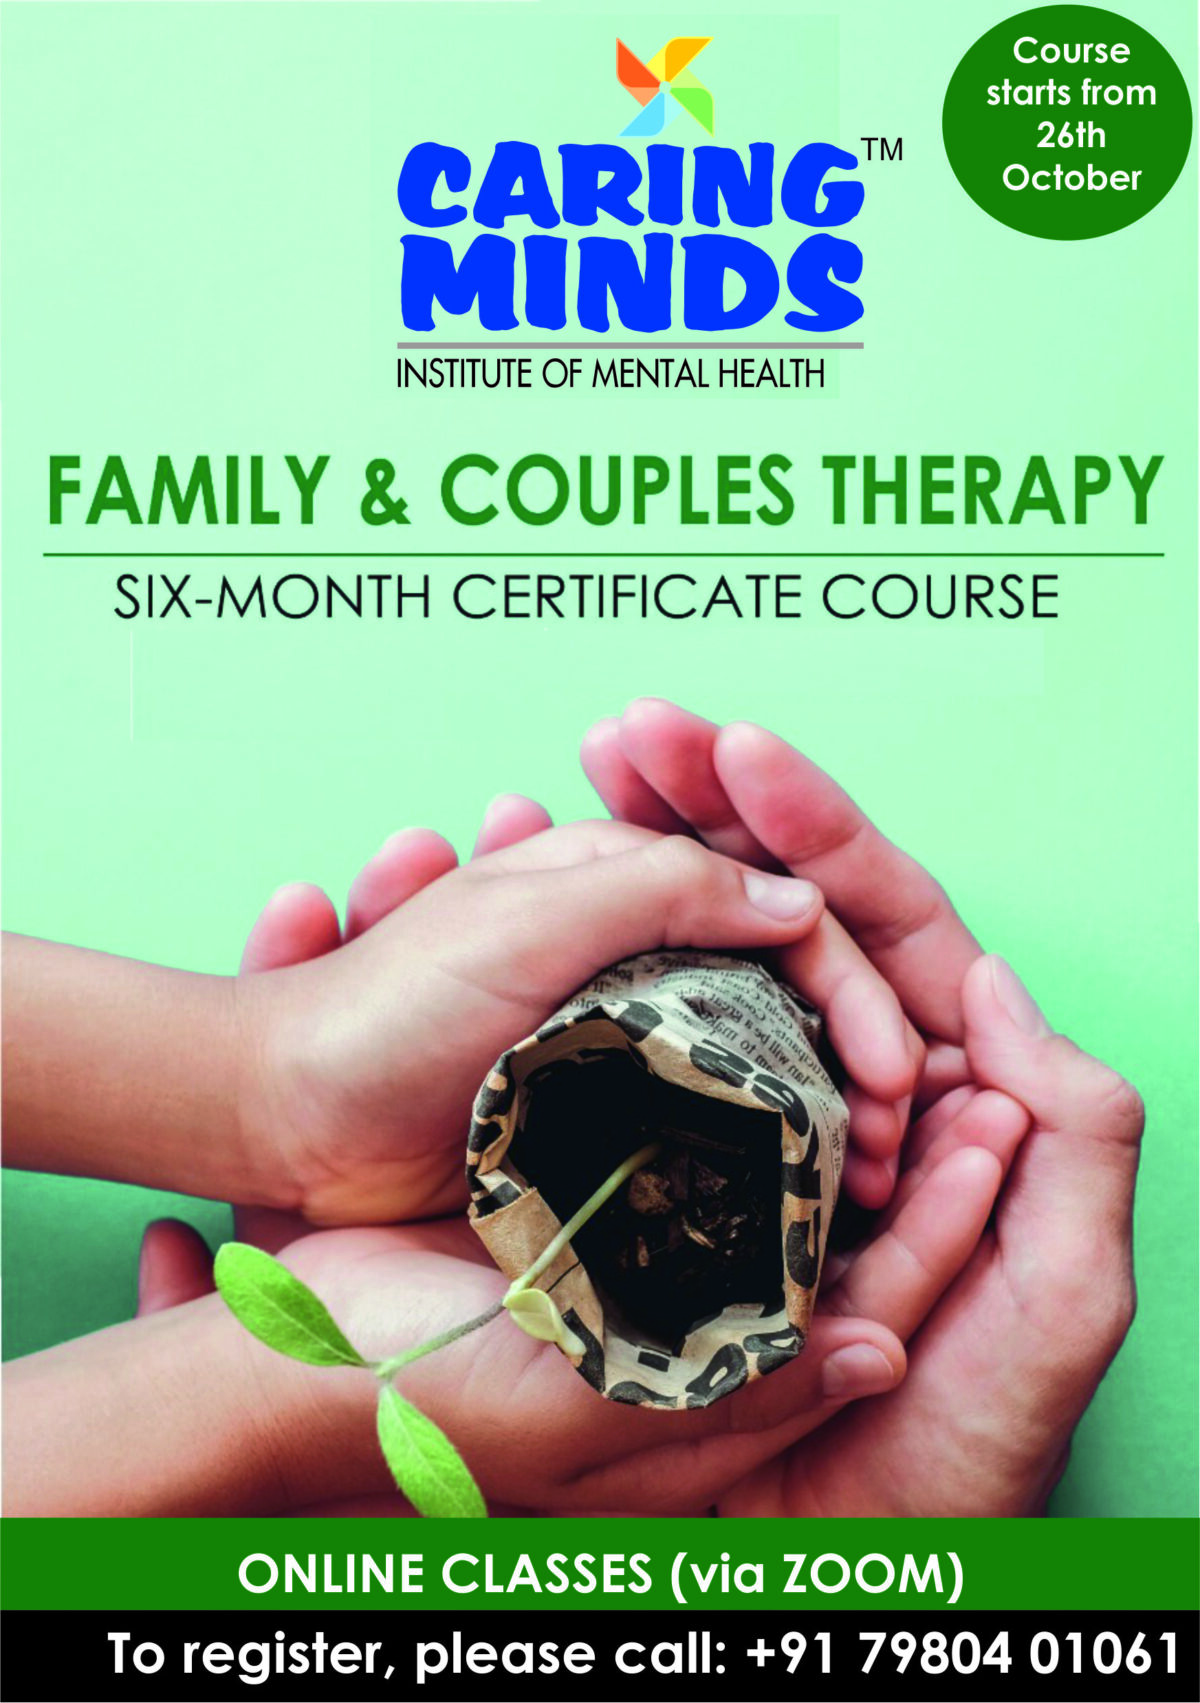 Familiy & Couples Therapy Course